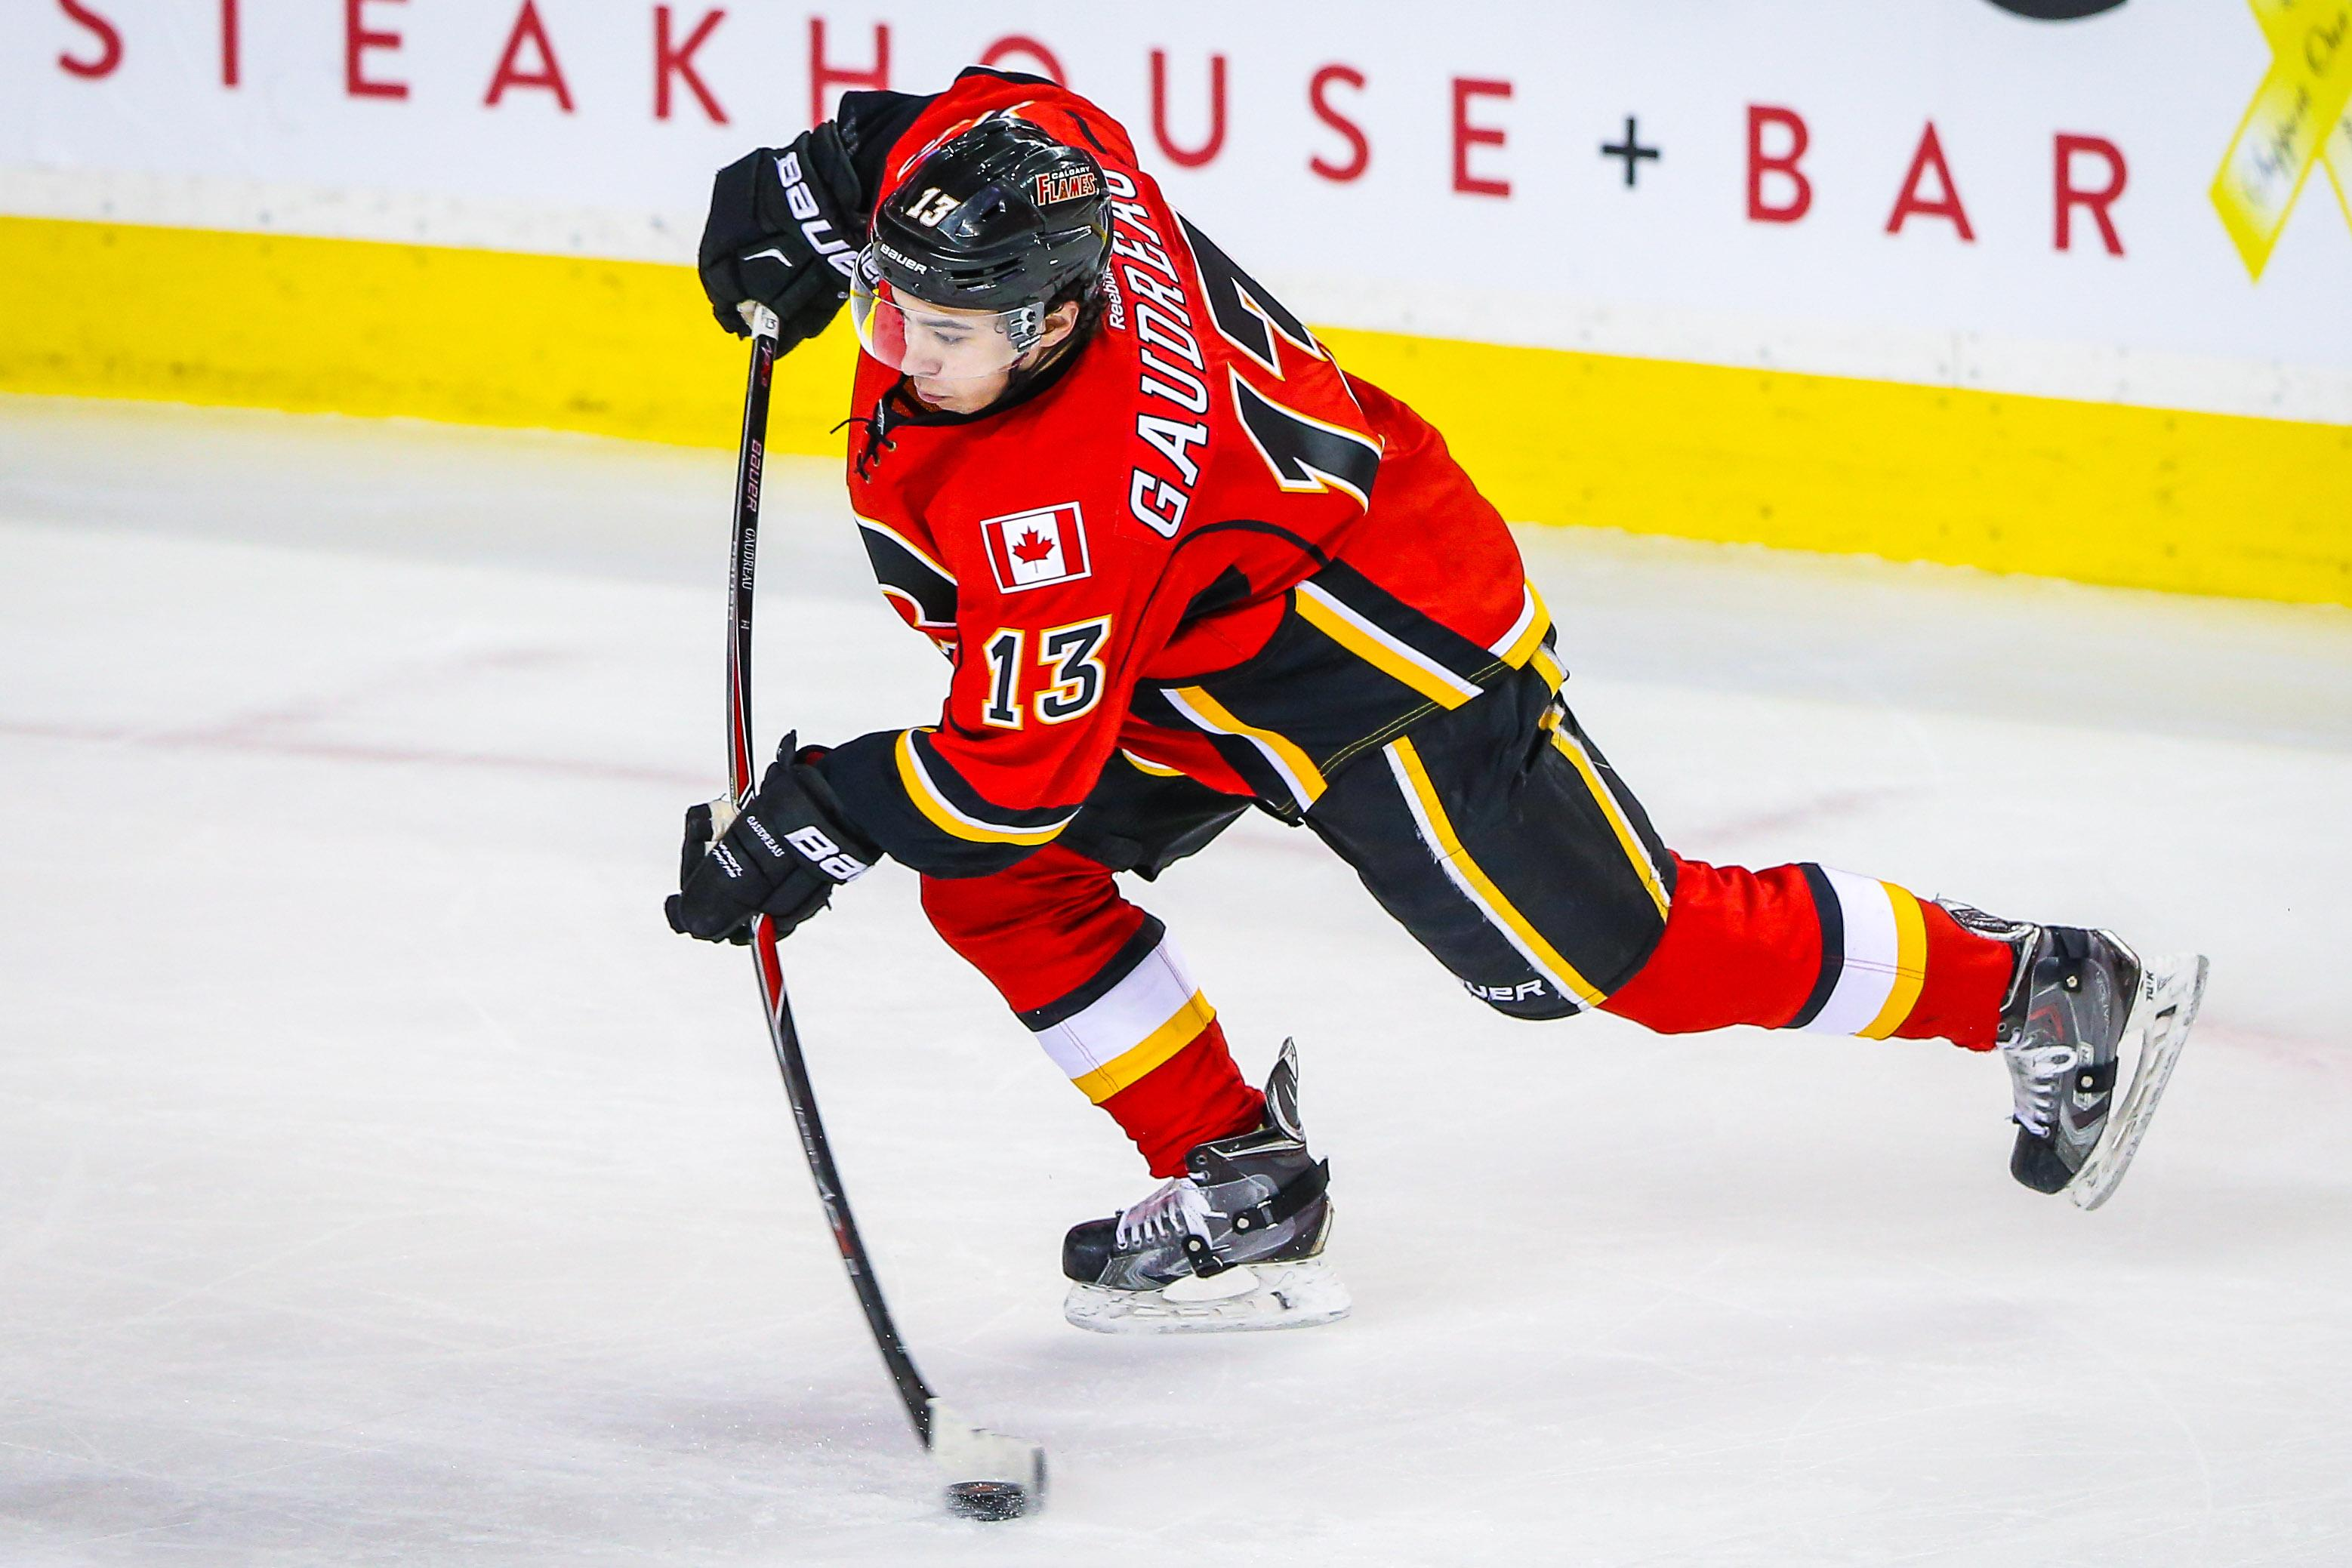 Pin Johnny Gaudreau Wallpapers Image to Pinterest